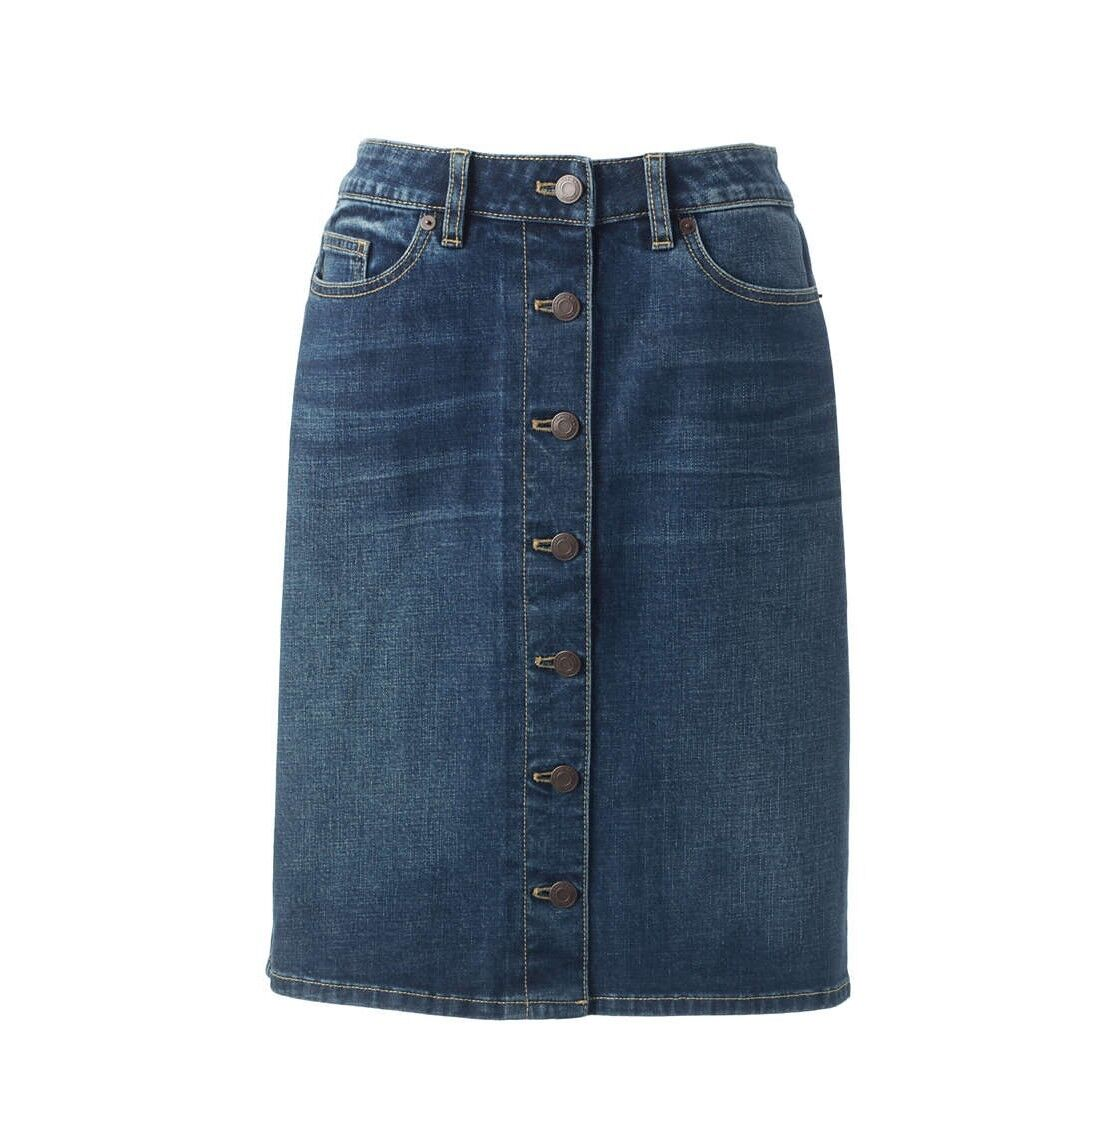 LANDS' END Plus Size 22W, 26W Button Front Weathered Indigo Denim Skirt NWT